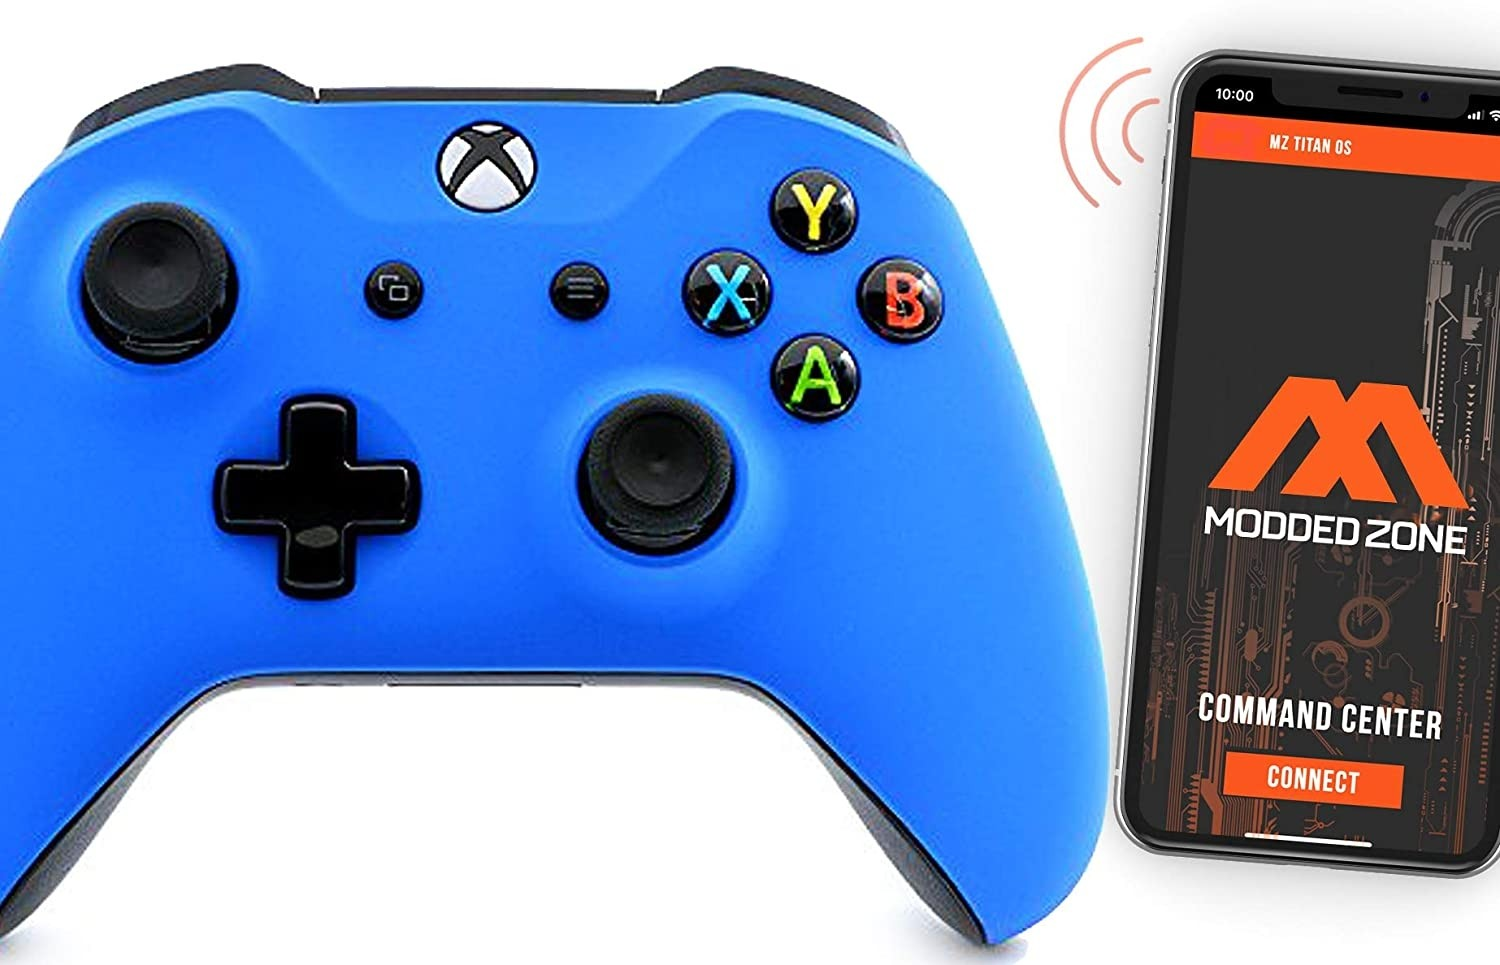 Soft Blue Smart Xbox One S Rapid Fire Custom MODDED Controller